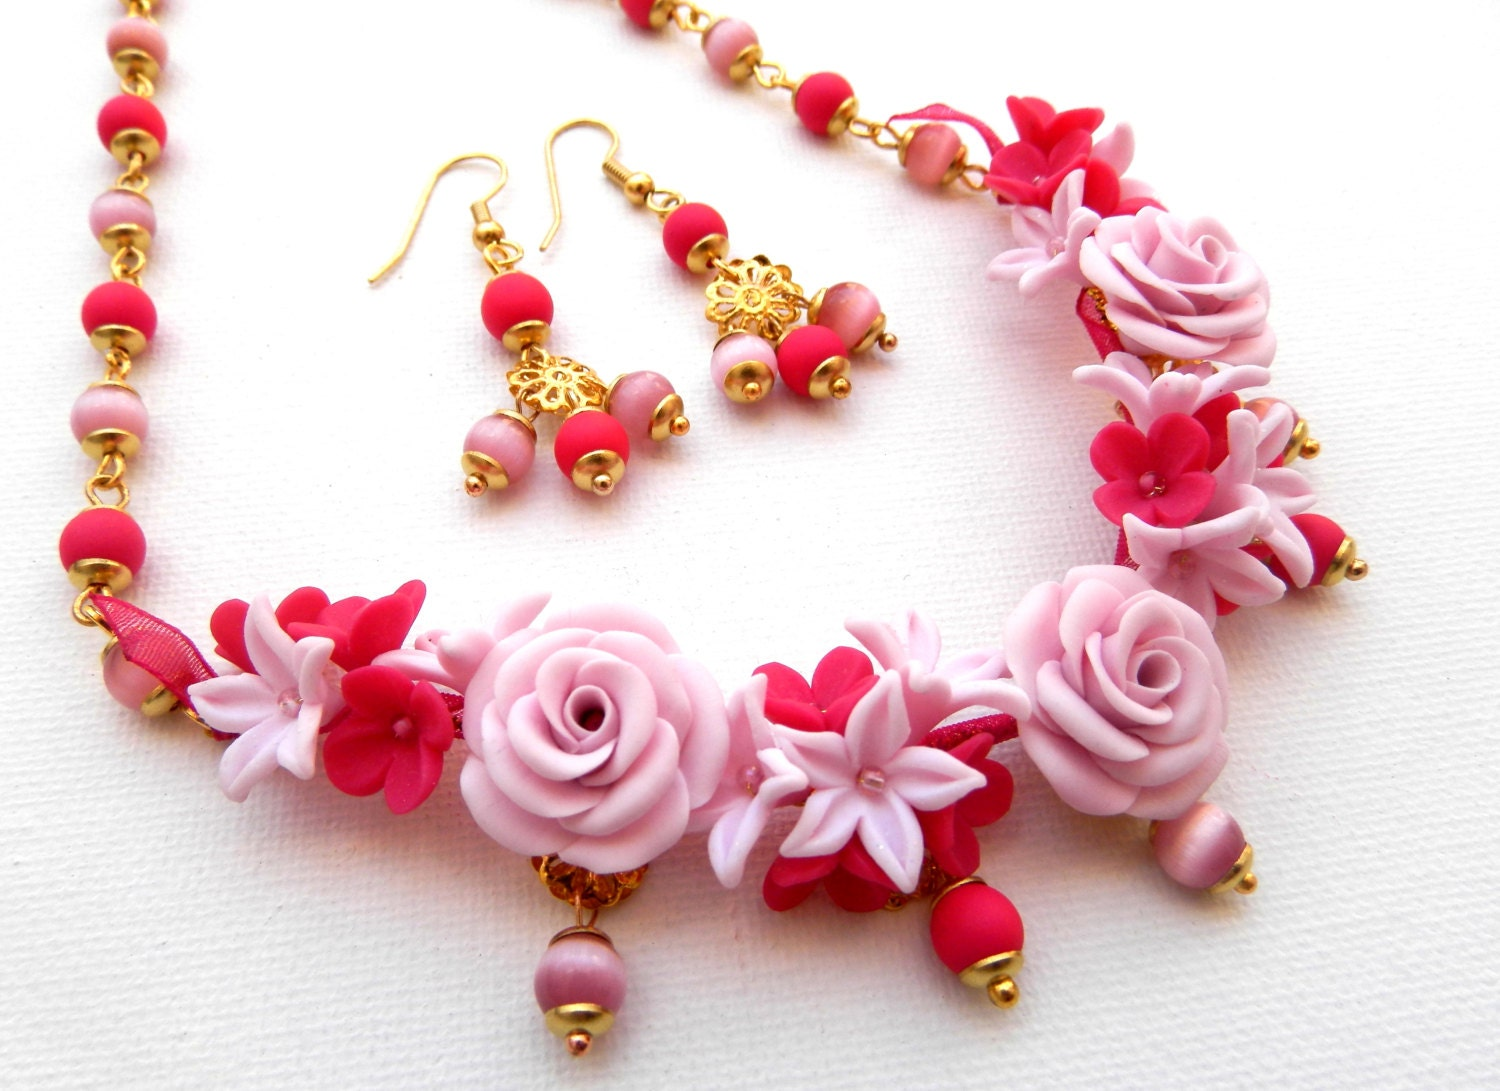 Roses Pink Jewelry Flower Jewelry Handmade Necklace